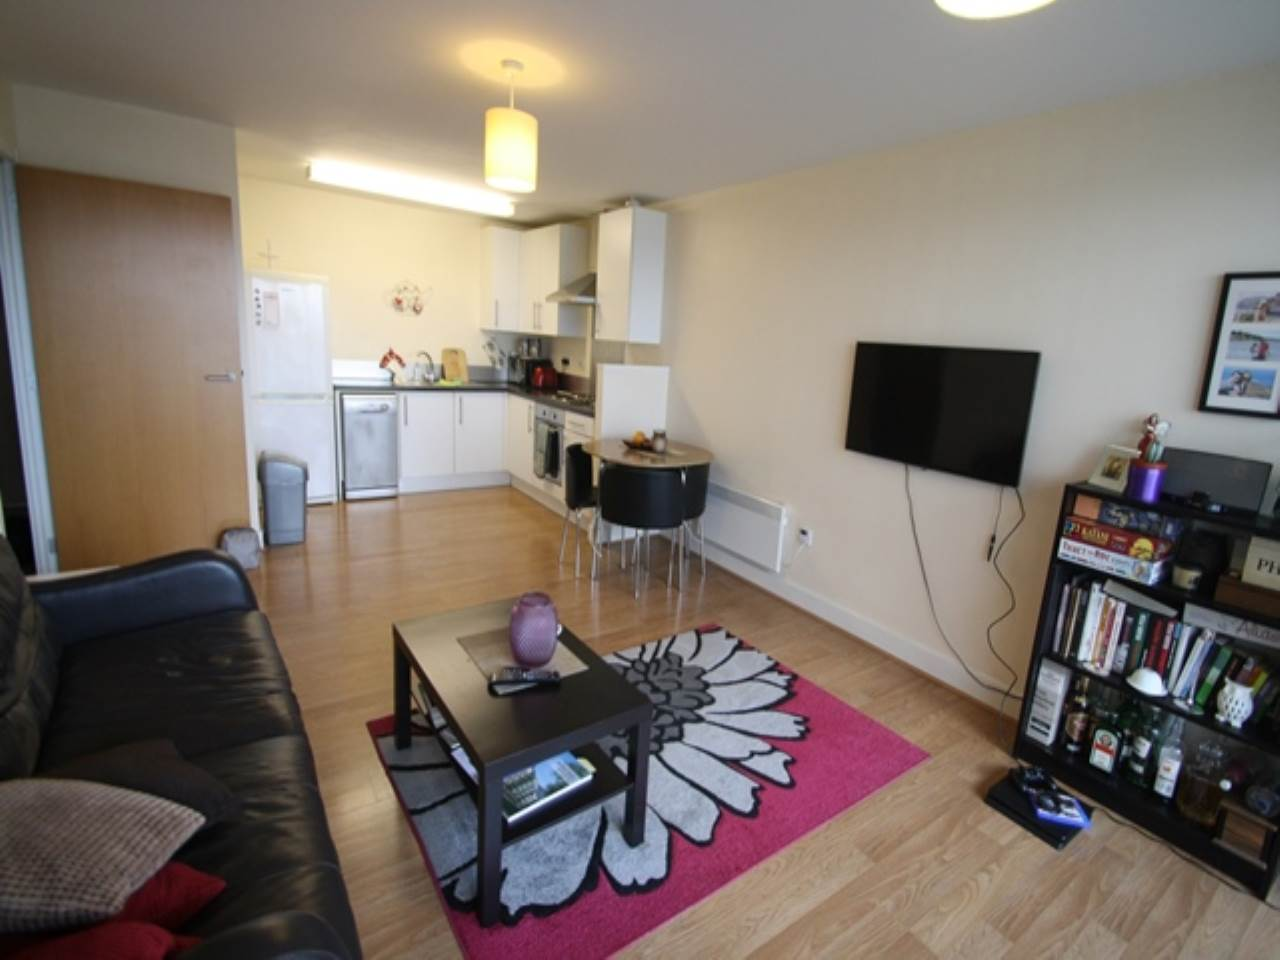 1 bed flat to rent in Gallions Road, E16